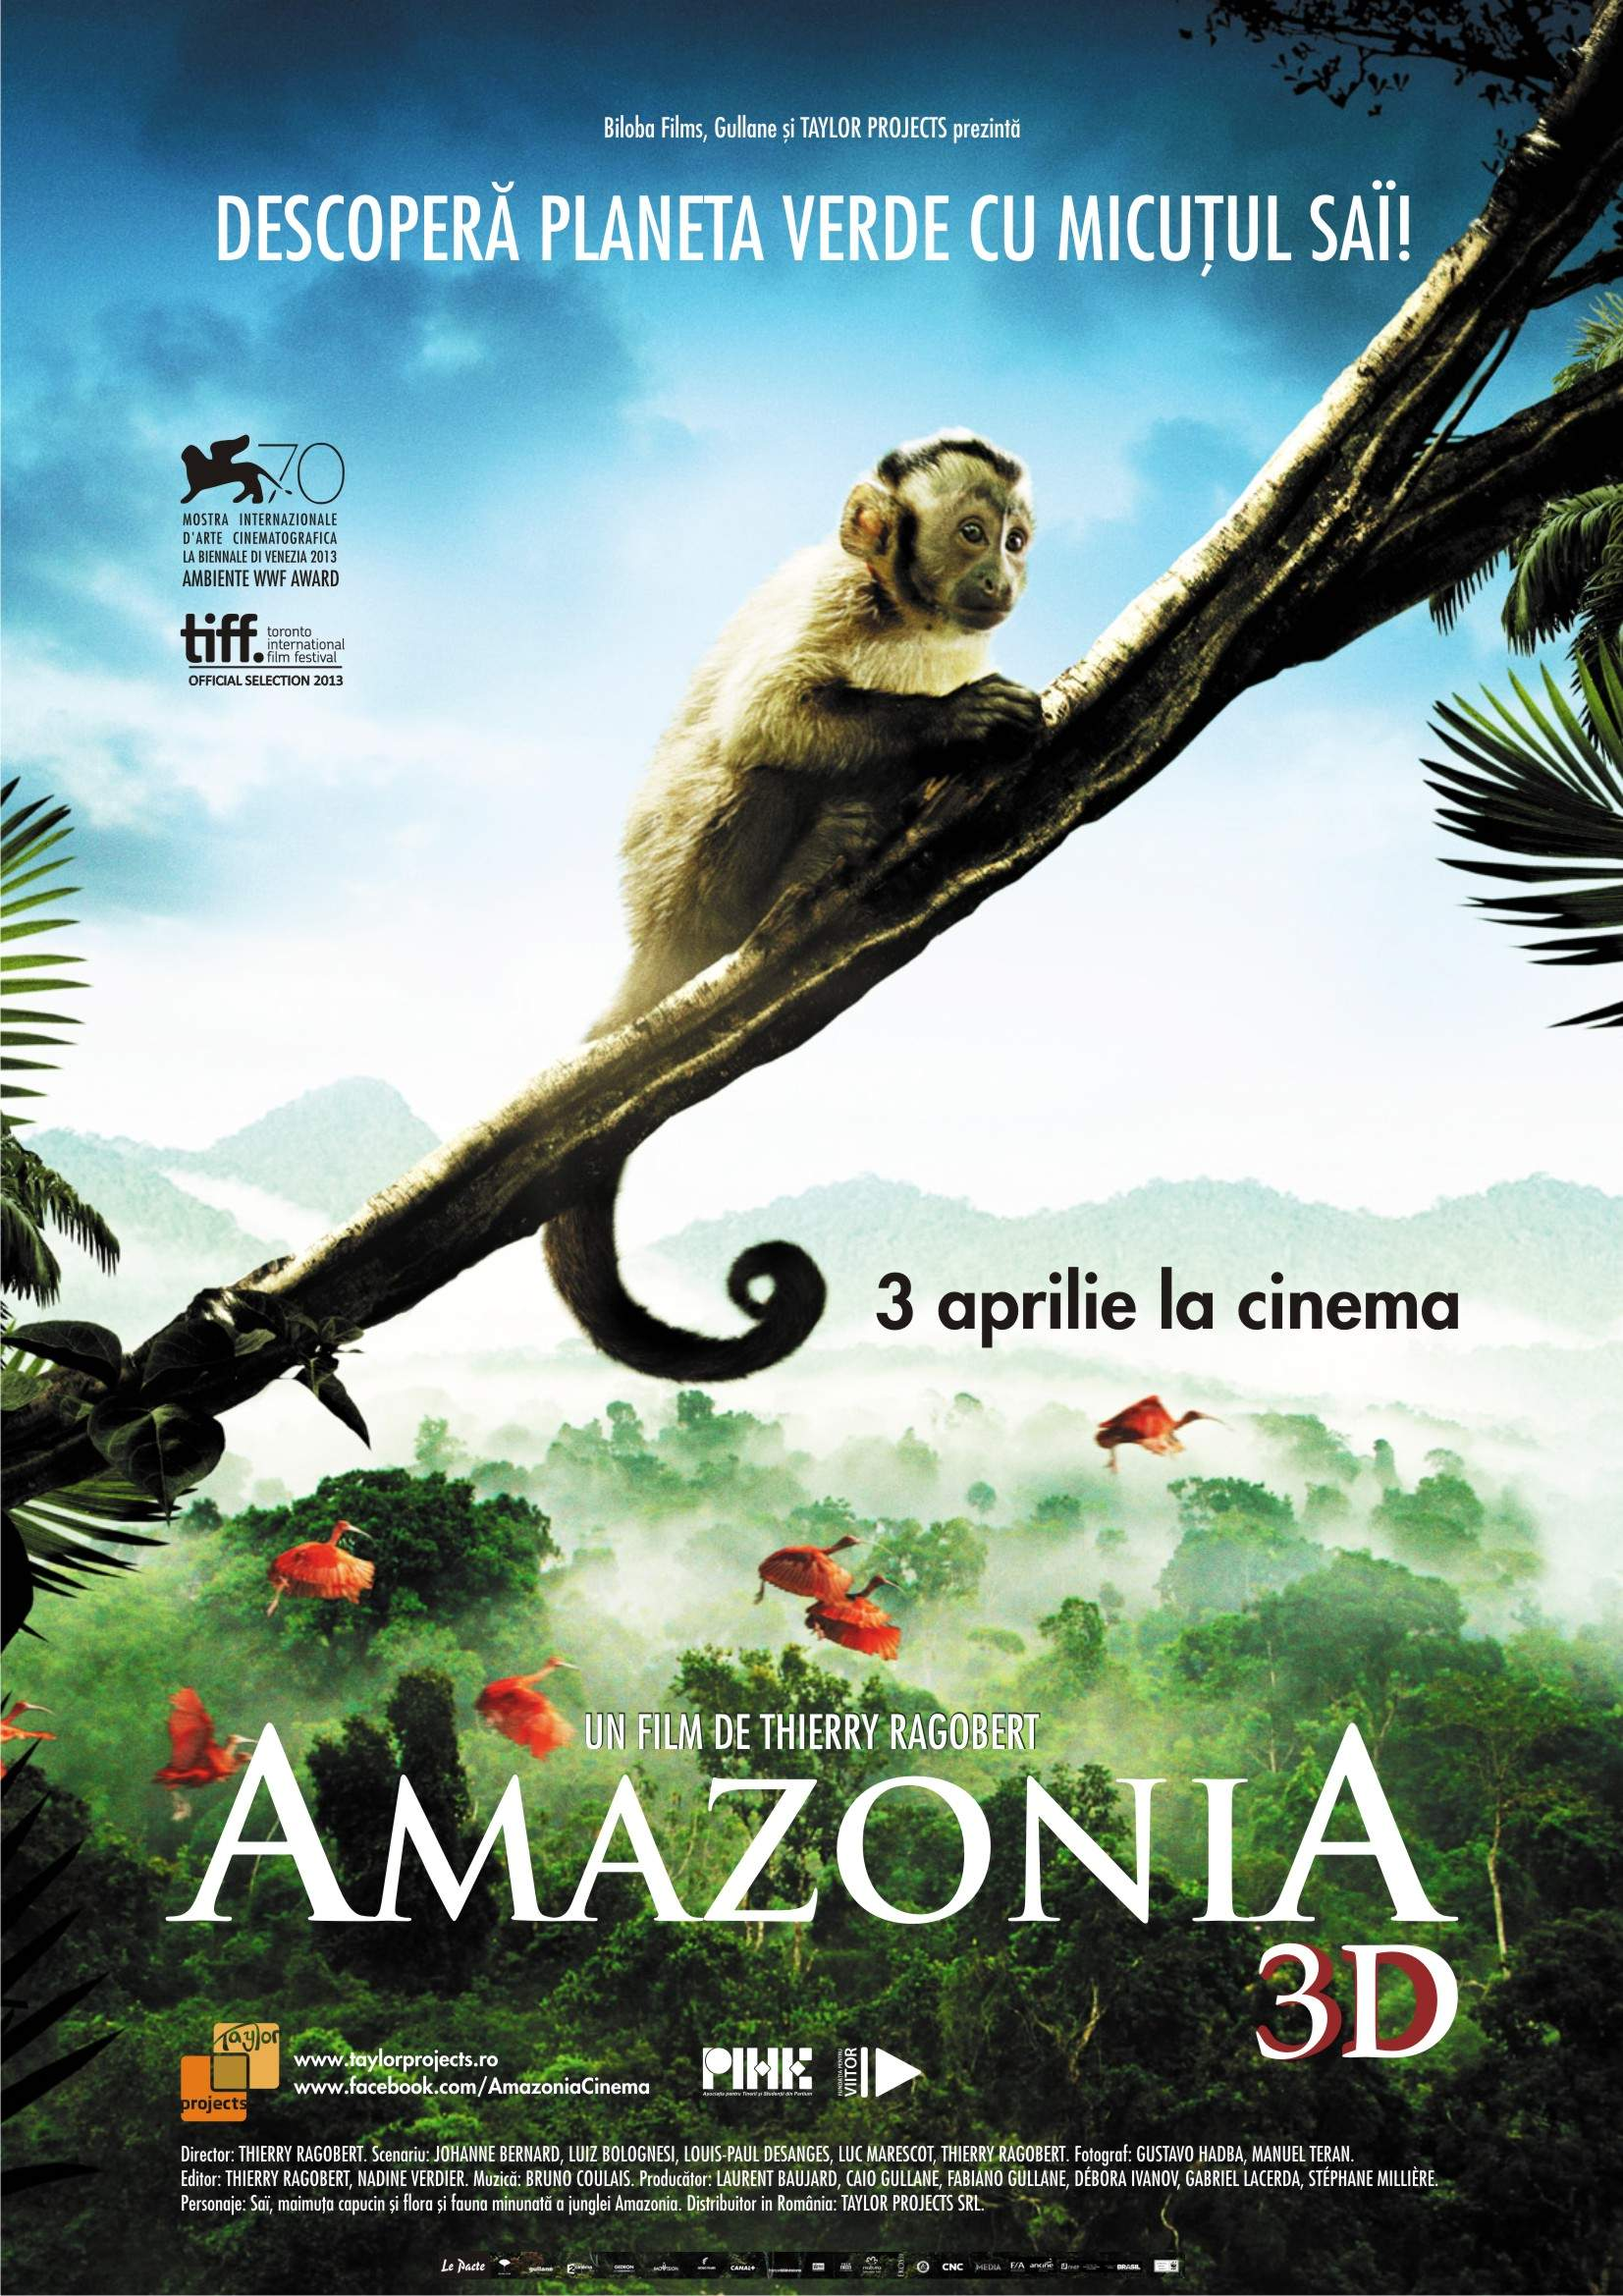 Amazonia 3D (2013) – Welcome to the jungle